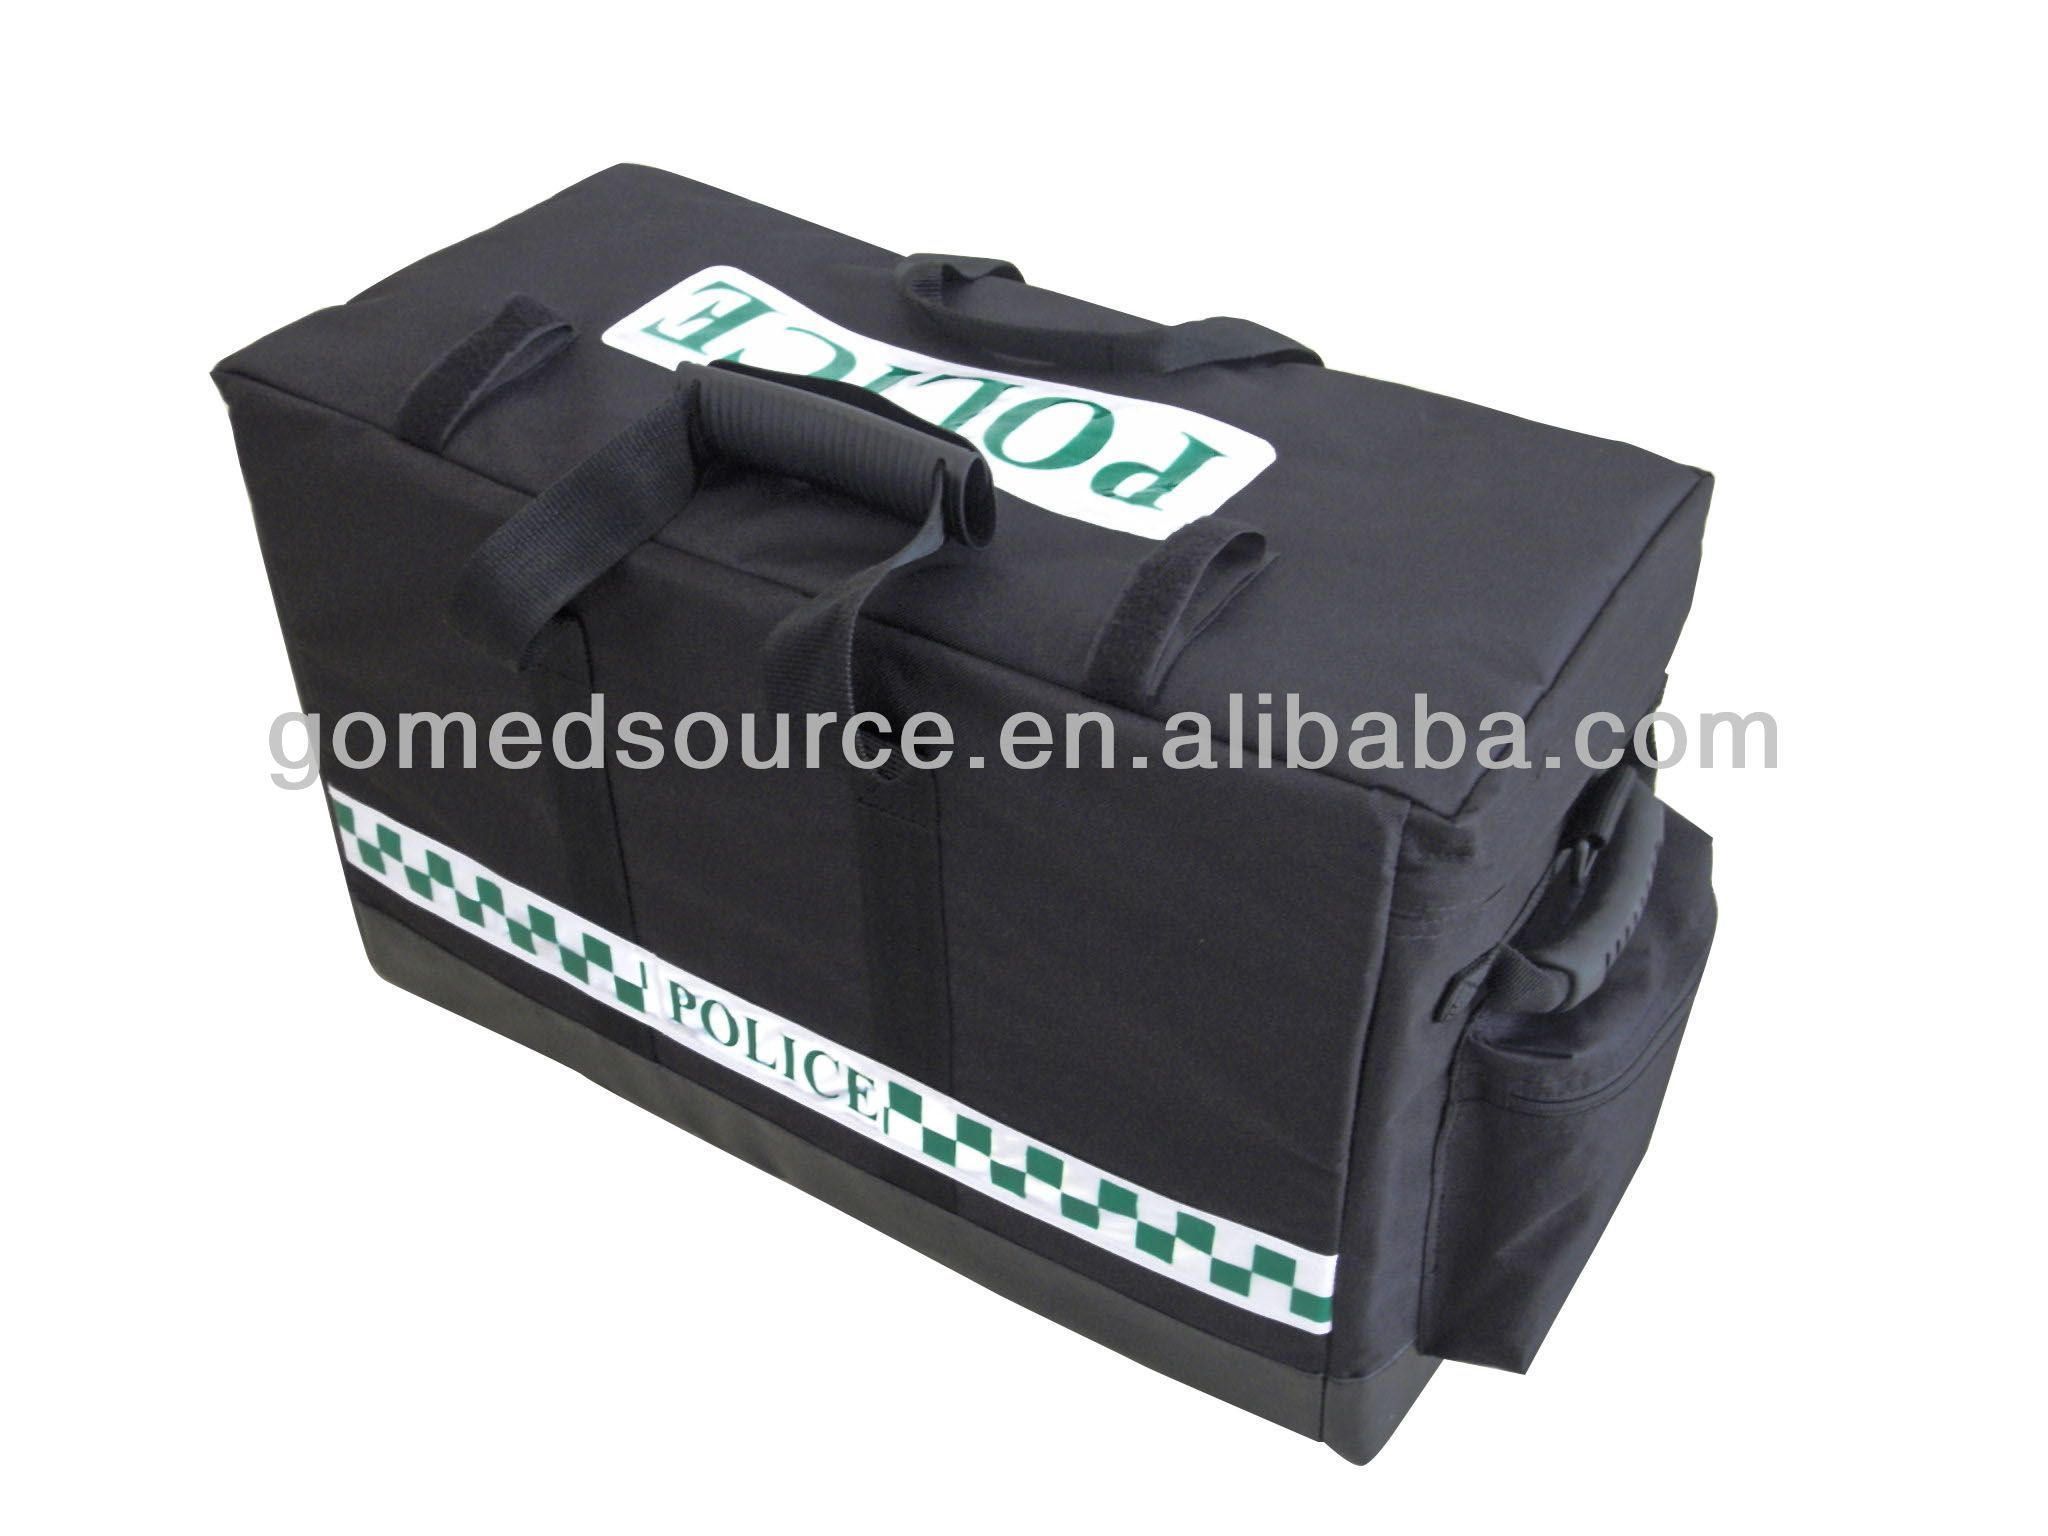 Police Equipment Bags - Buy Police Evidence Bags,Wholesale Police Duty  Bag,Heavy Duty Police Tactical Bag Product on Alibaba com